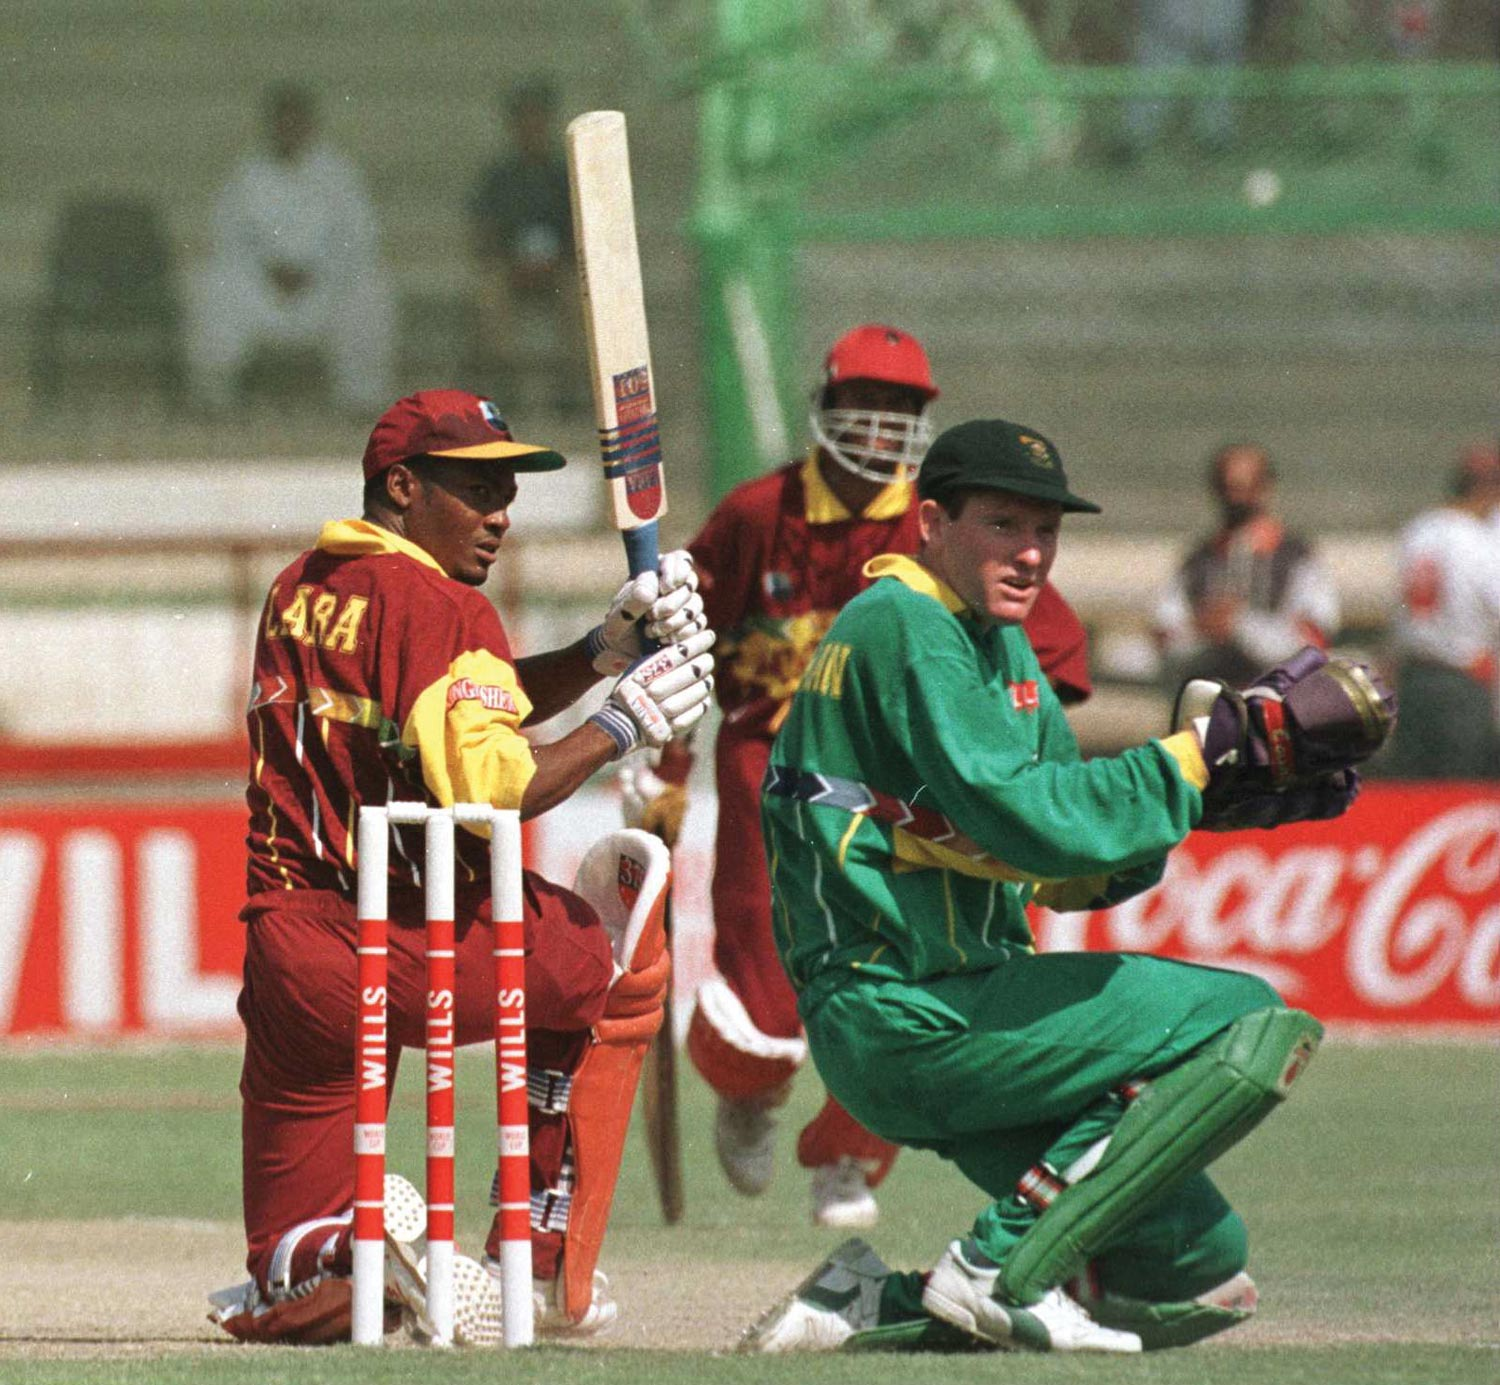 The West Indies' Brian Lara sweeps a shot on his way to 111 runs during the quarter-final match against South Africa in the 1996 World Cup. Photo by John Parkin/Allsport